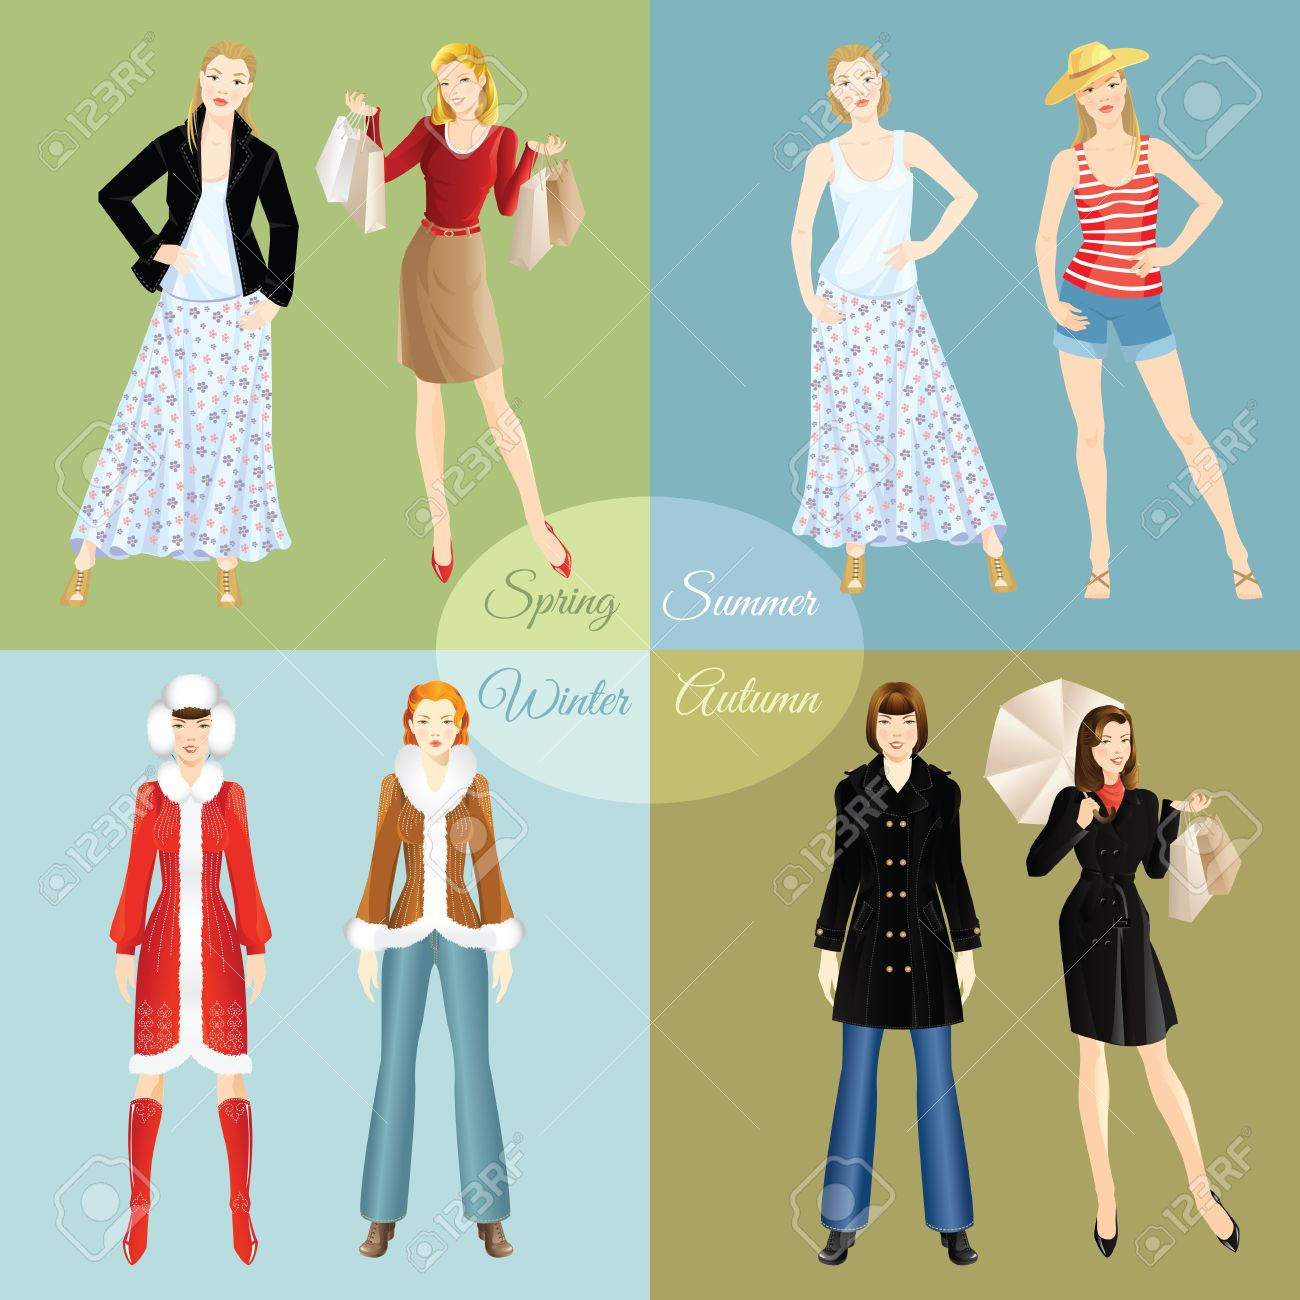 7d78573d1a5 Vector - Vector illustration of woman in clothes for different season  isolated on color background. Winter